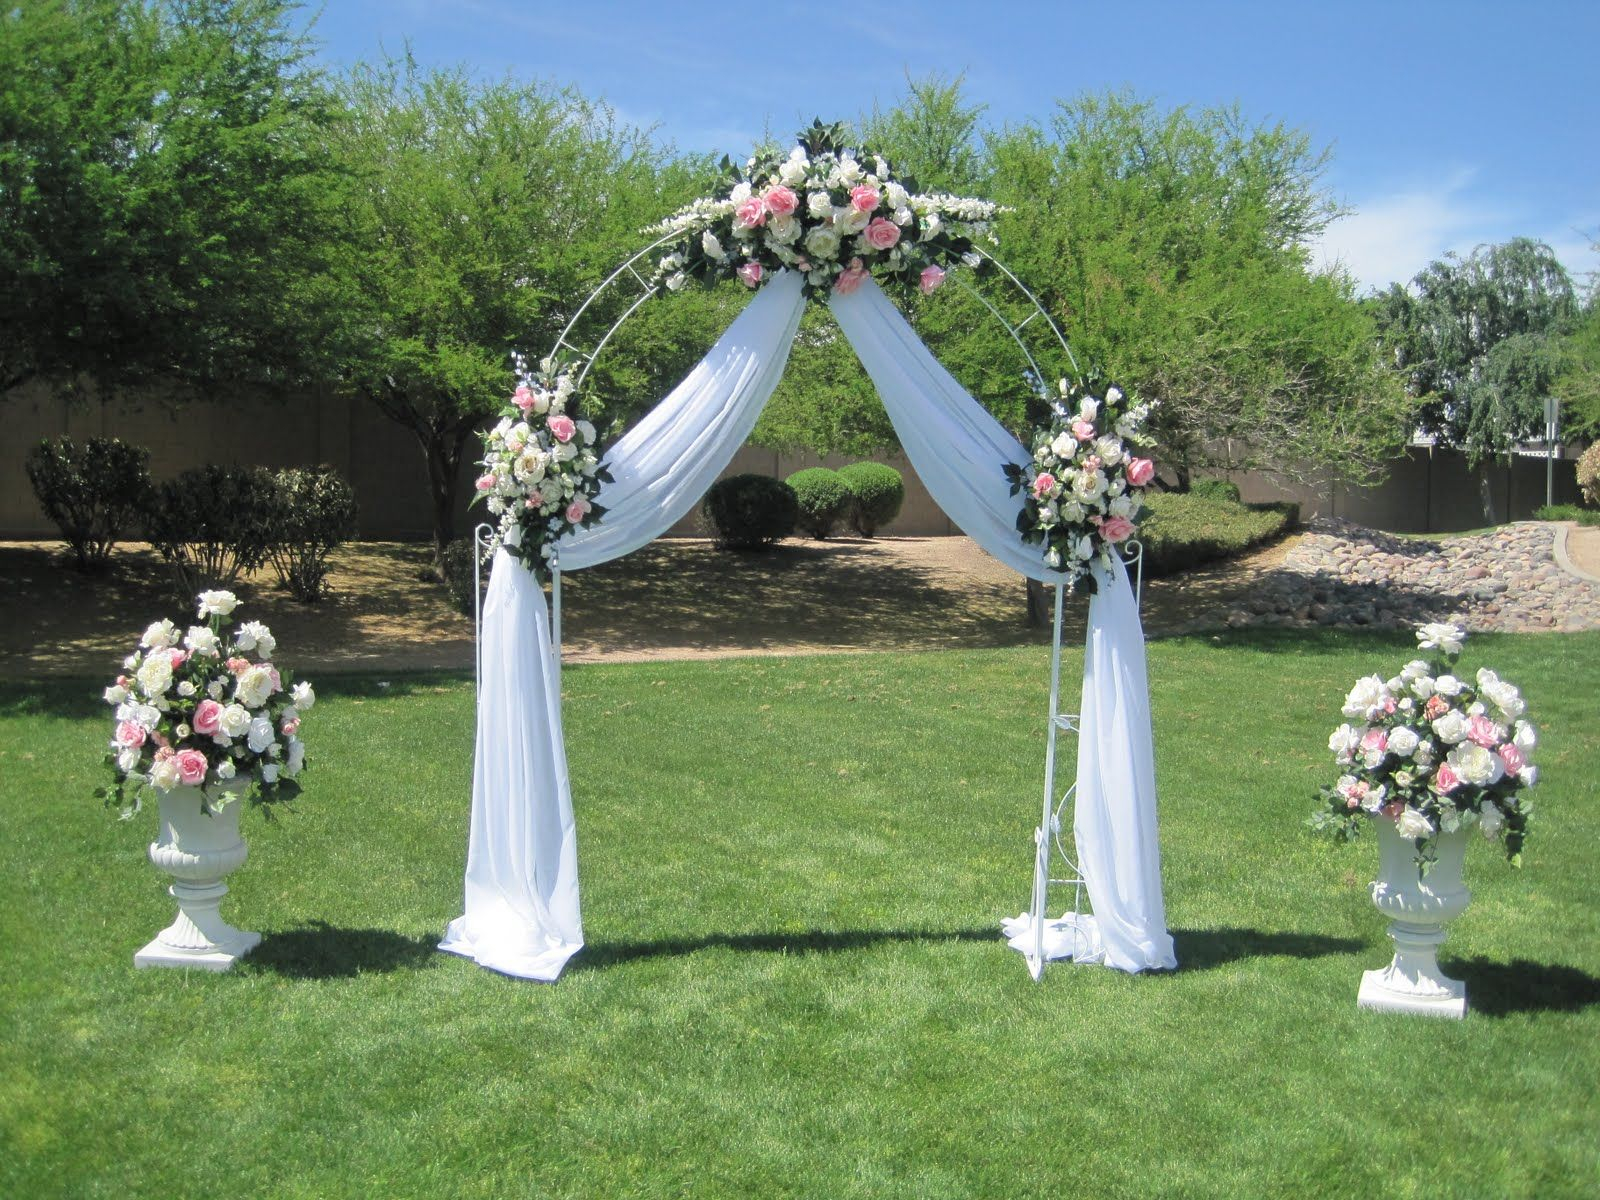 Wedding gazebo decorating ideas white wrought iron arch for Archway decoration